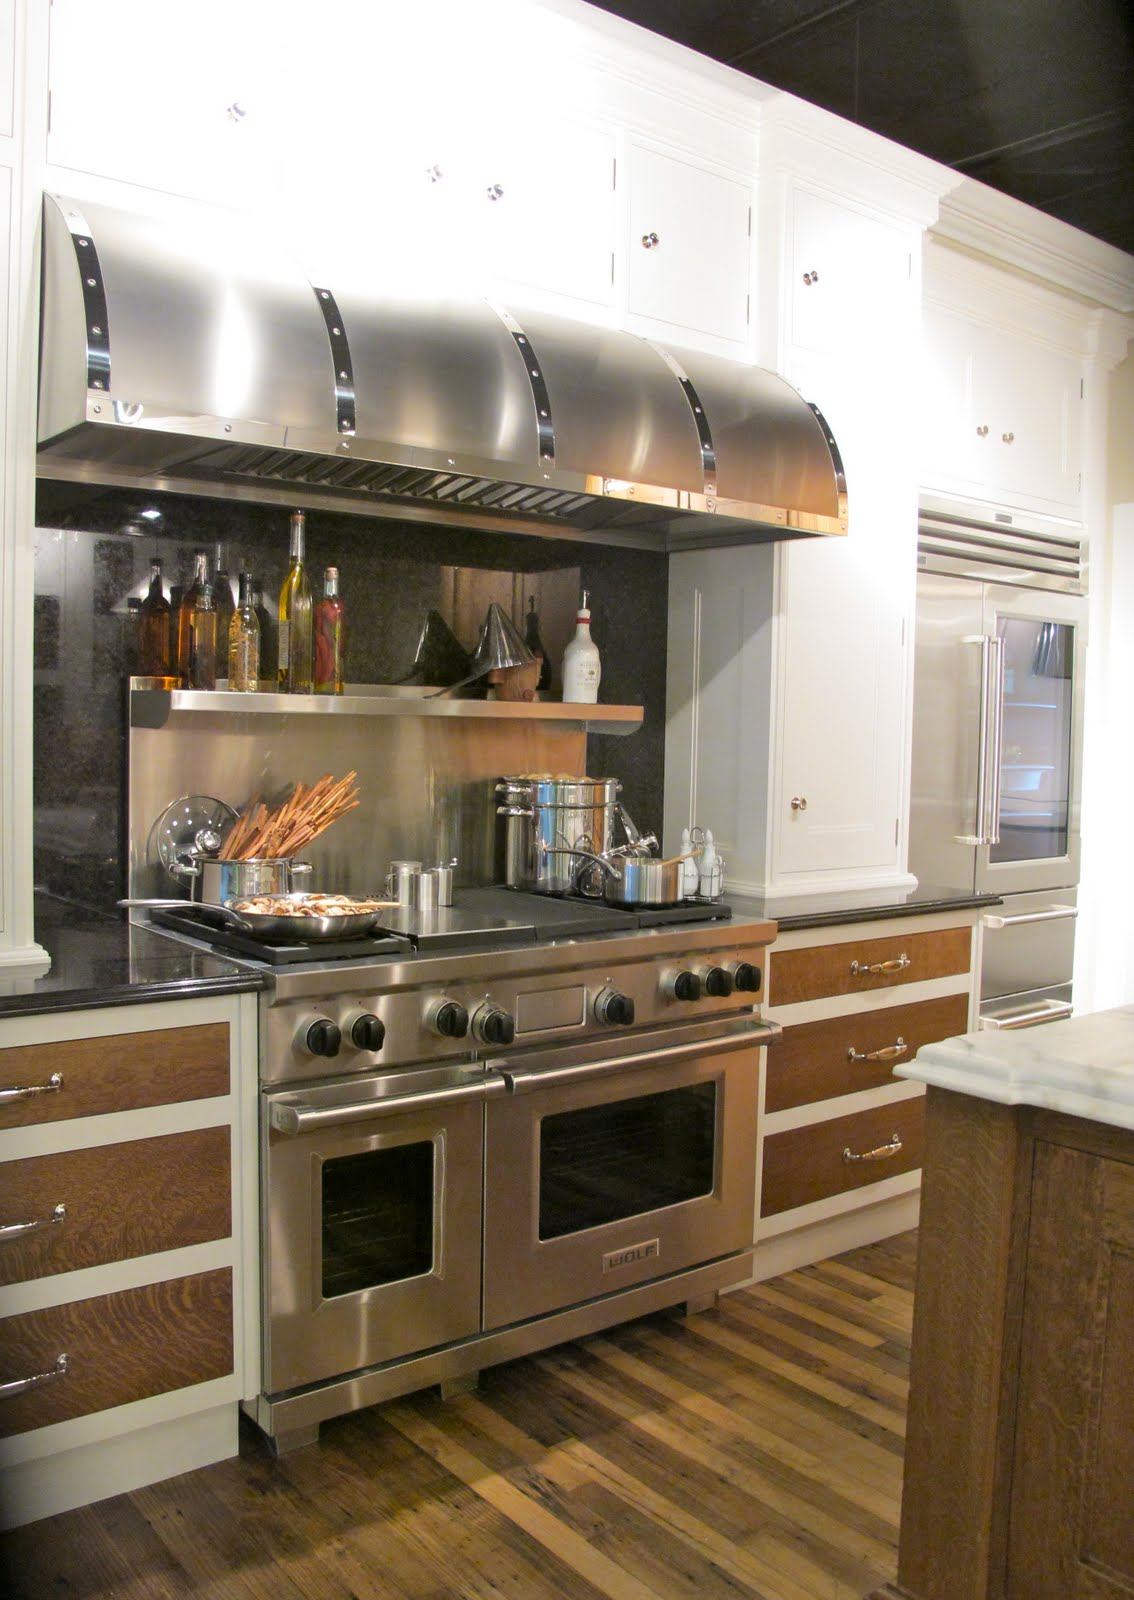 Jenny steffens hobick kitchens the most amazing for Kitchen for kitchen